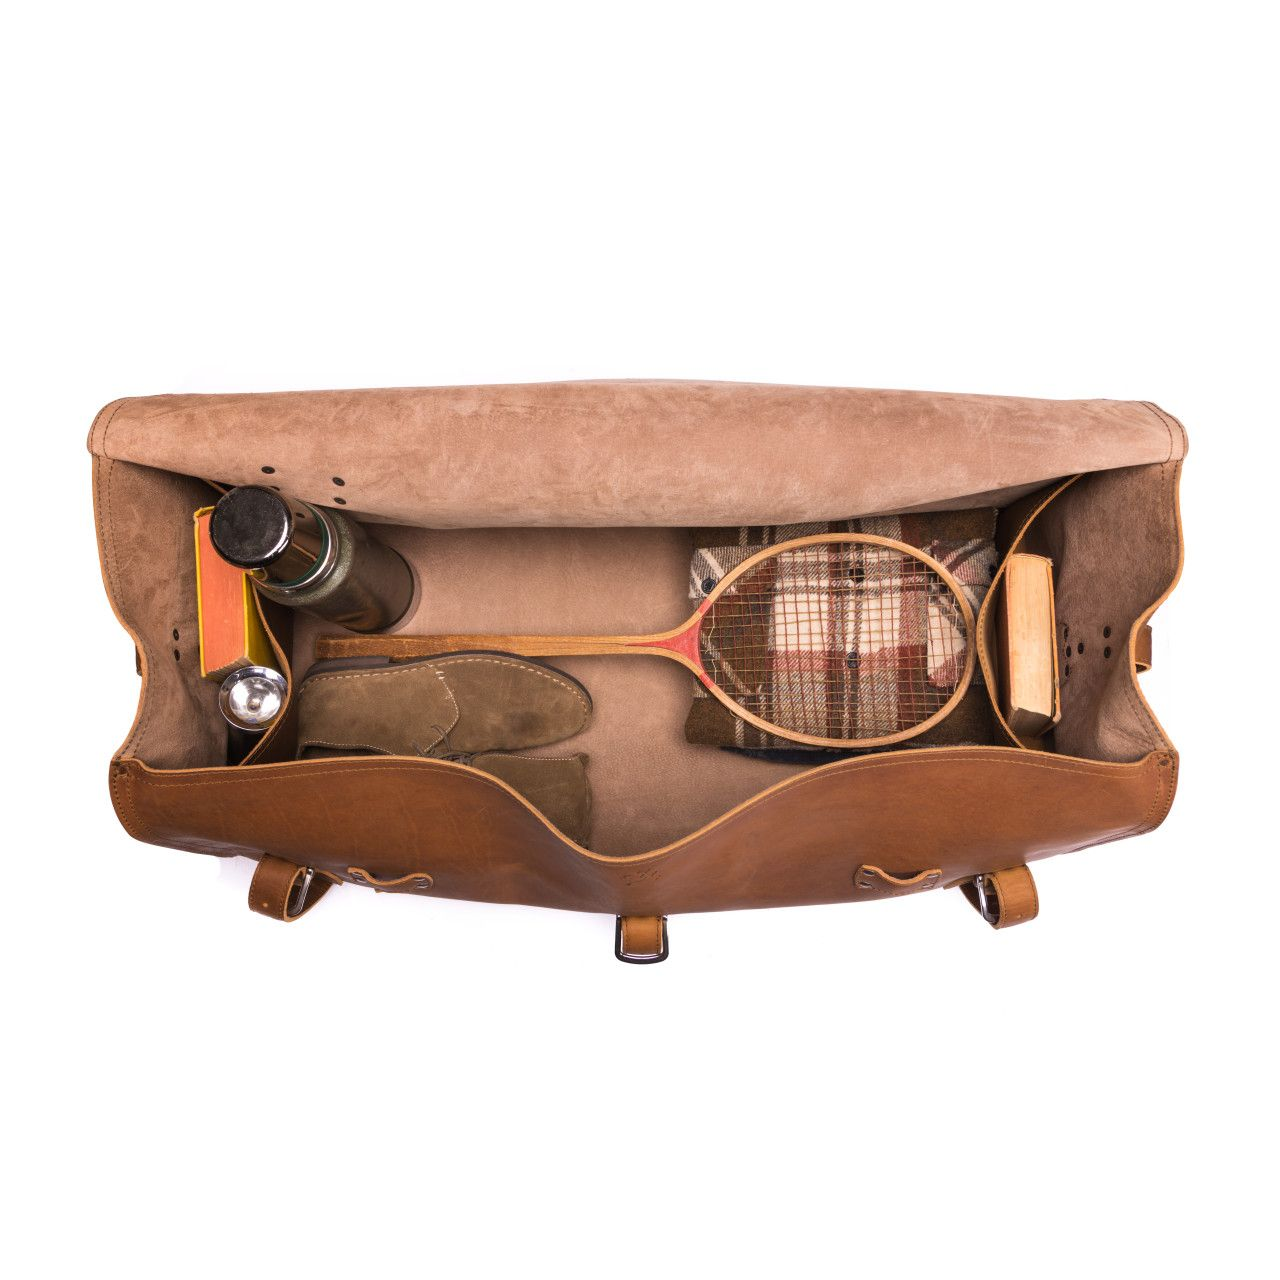 large leather duffel bag in tobacco leather with shoes, books, badminton racket, thermos in the interior